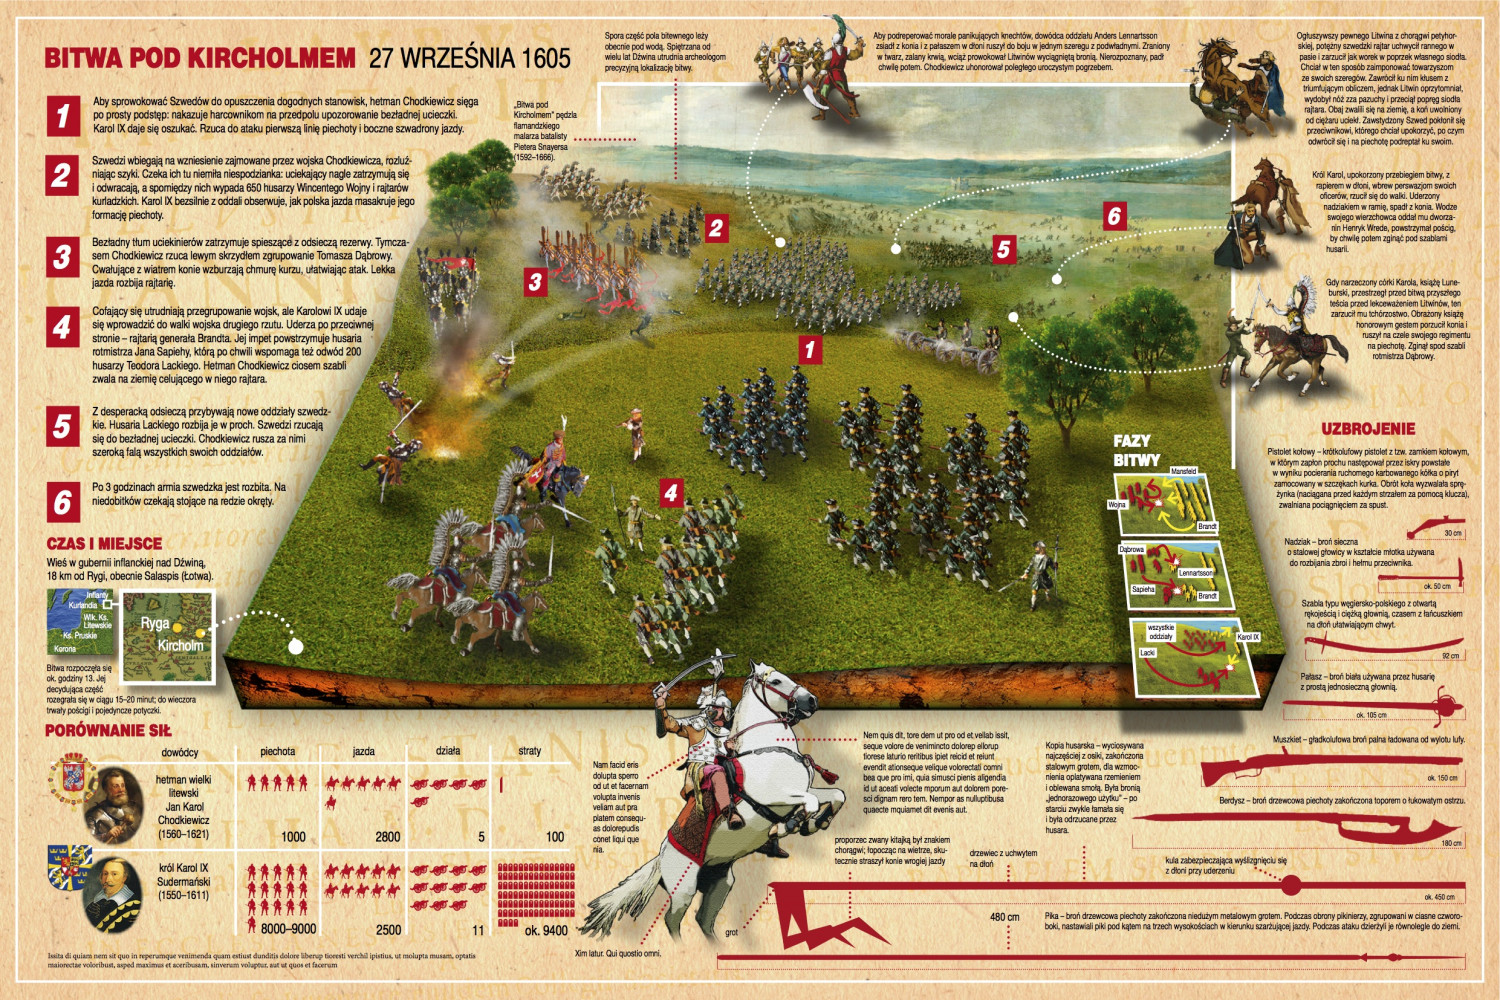 Battle of Kircholm 1605 Infographic